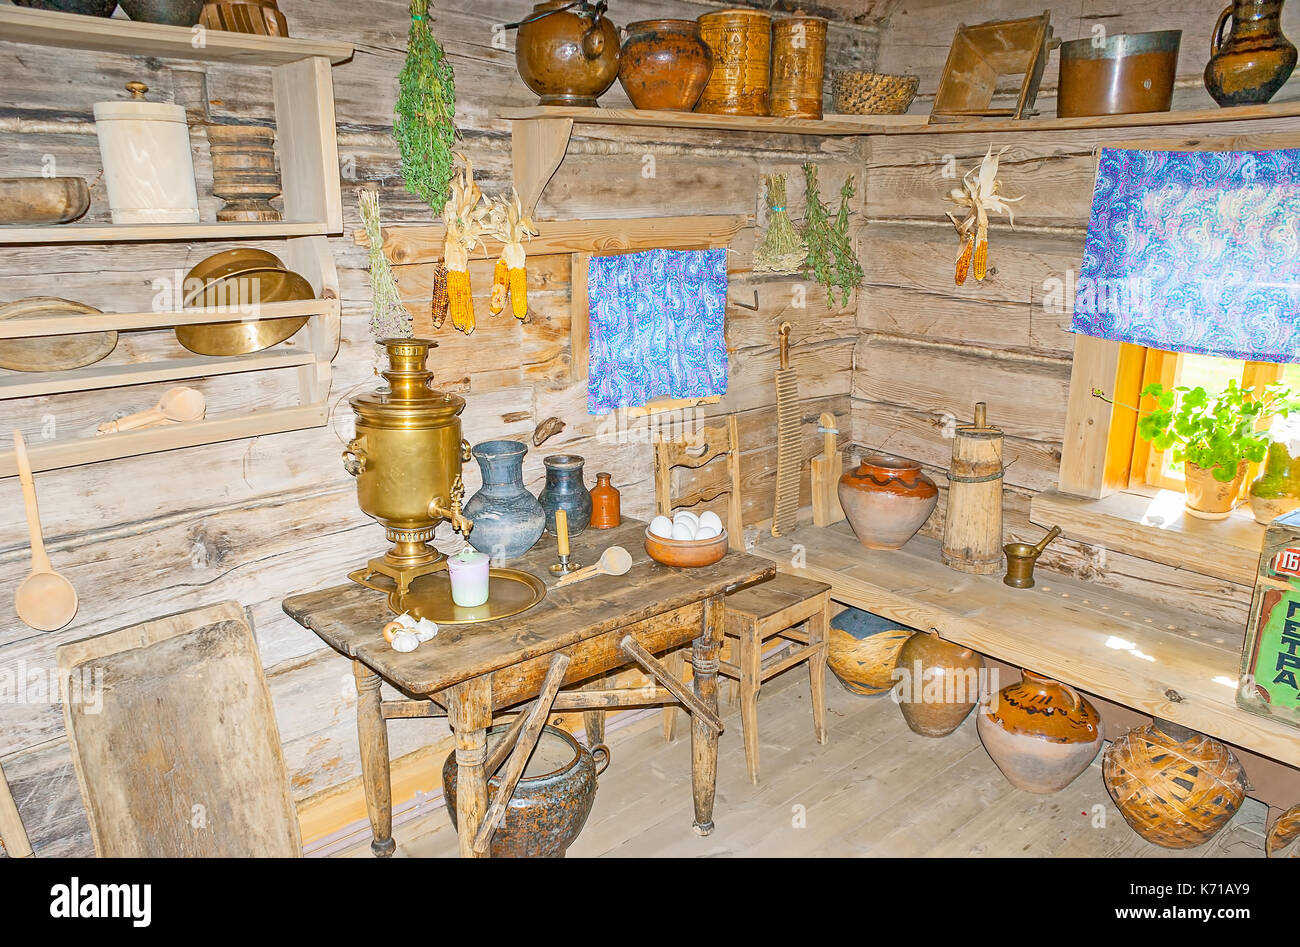 SUZDAL, RUSSIA - JULY 1, 2013: The kitchen in wooden izba in Museum of Wooden Architecture and Peasant Life, the samovar and old preserved tableware a - Stock Image